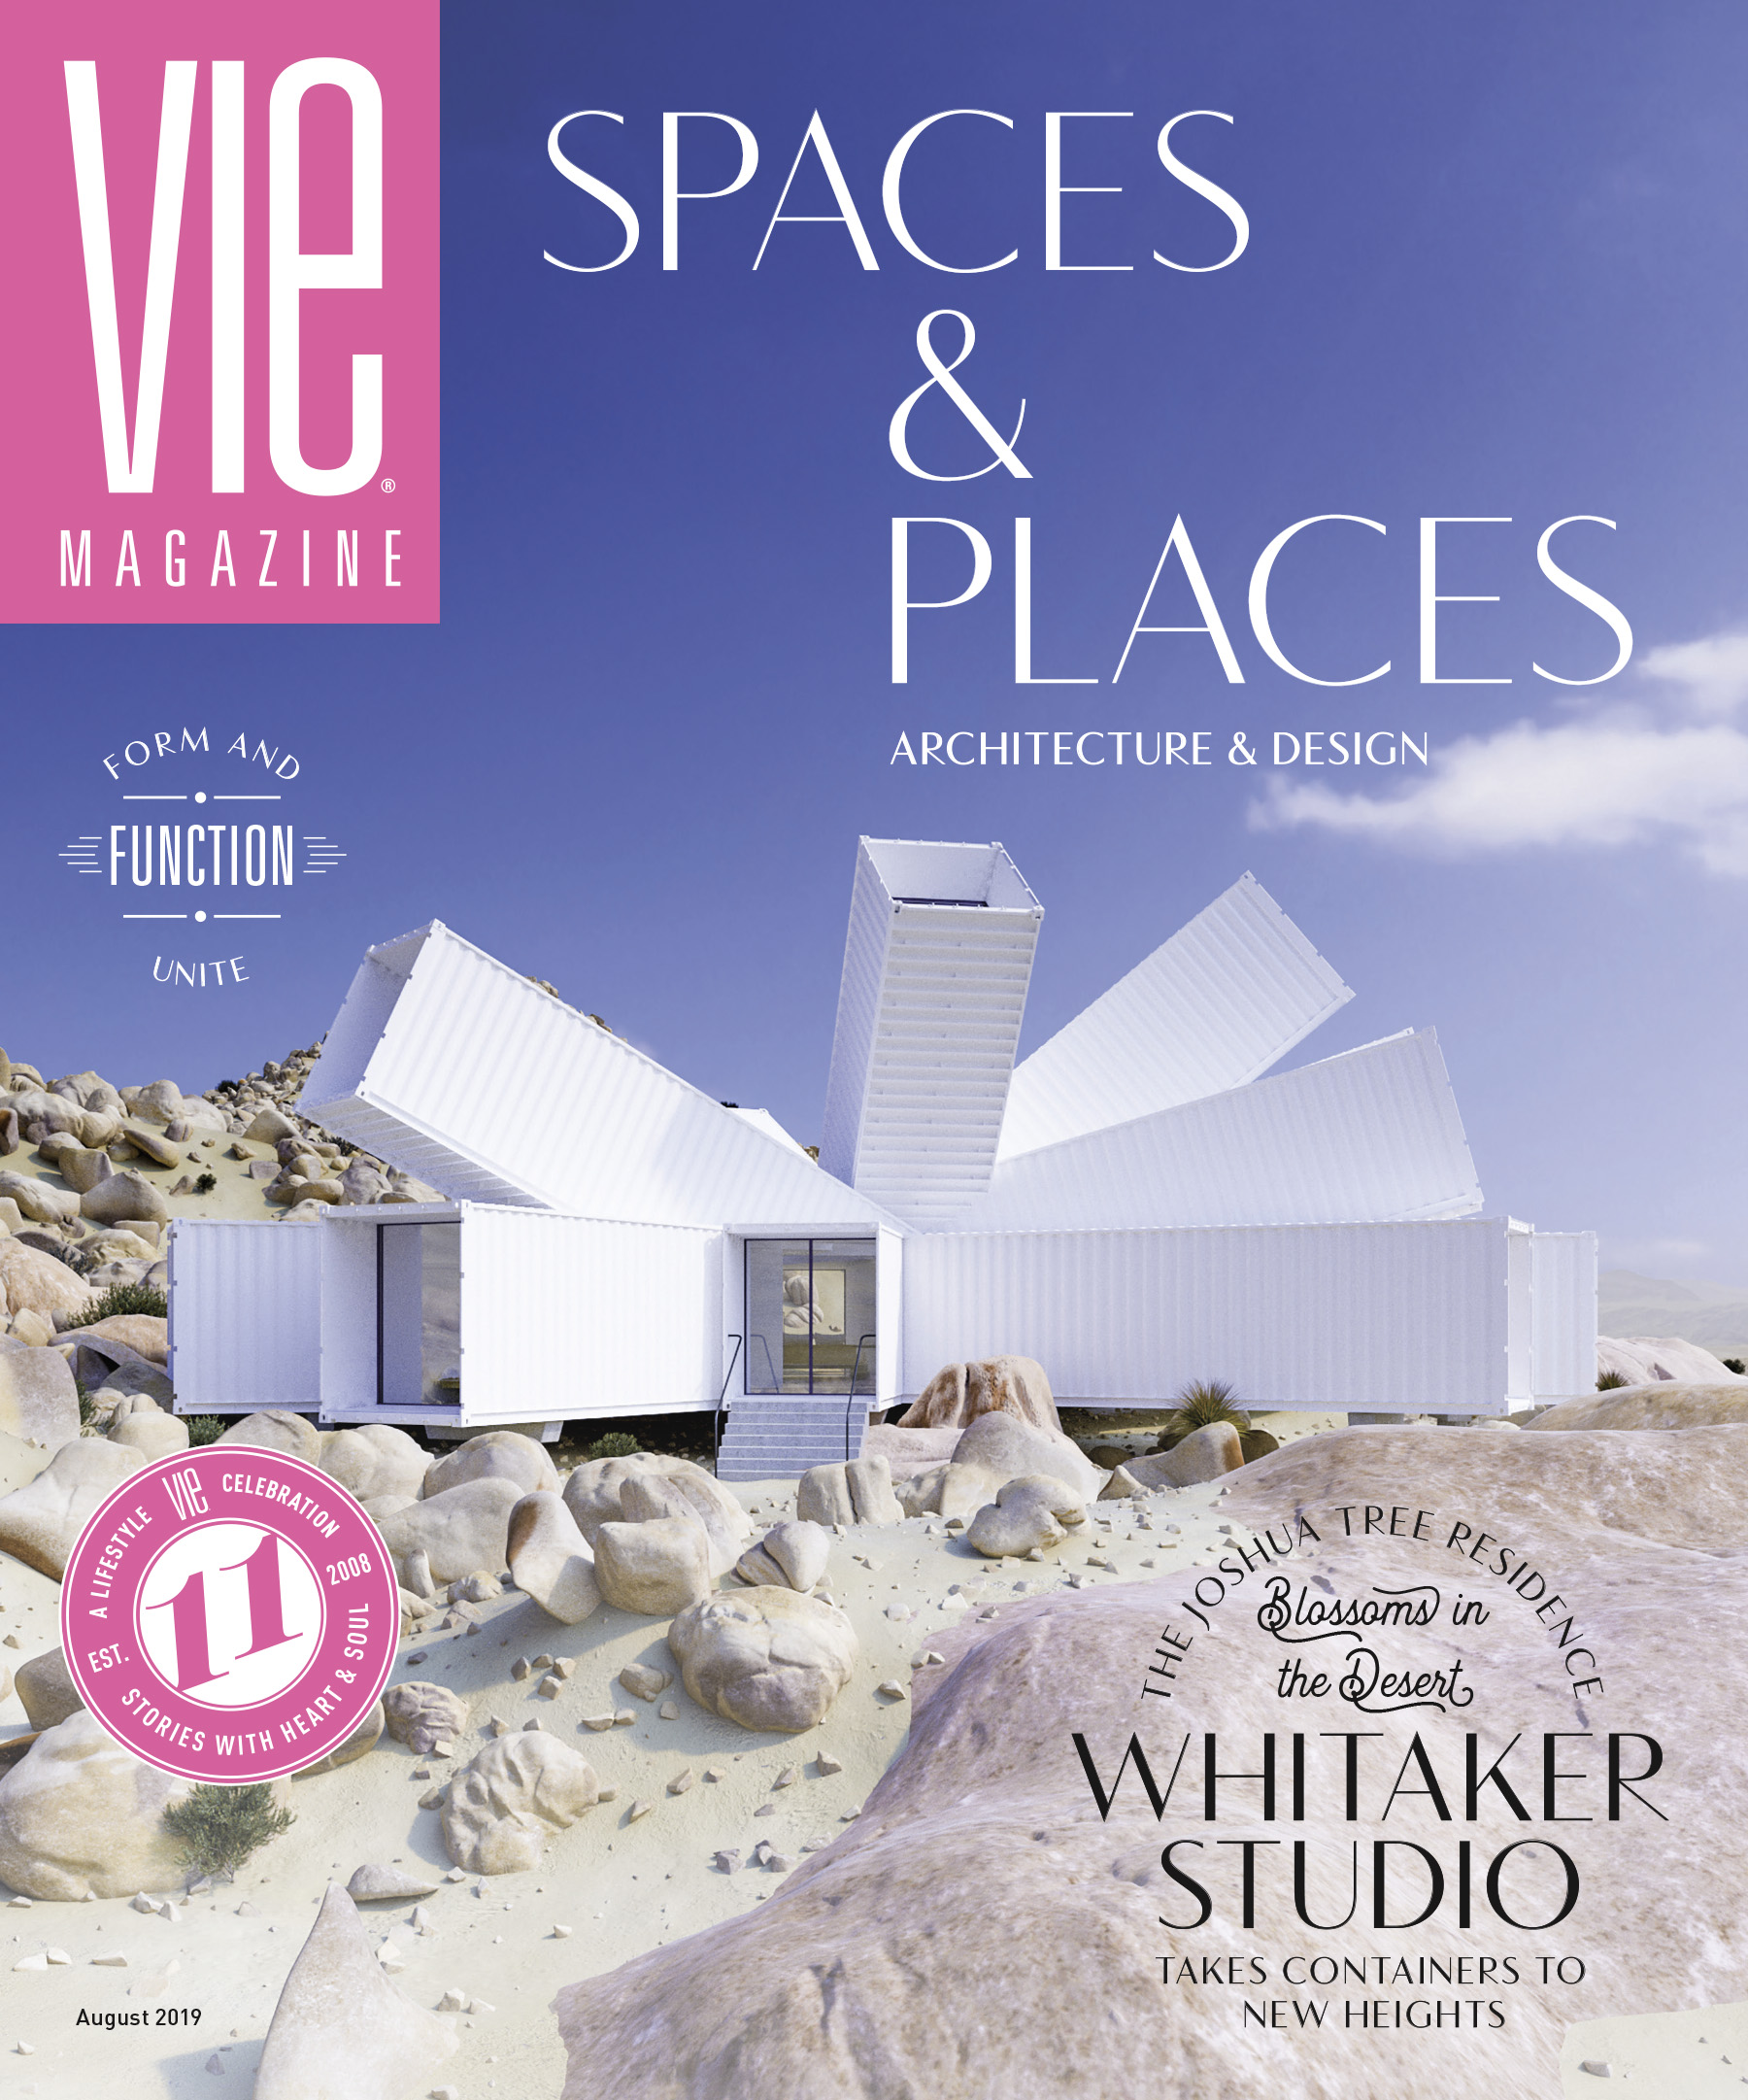 Whitaker Studio on front cover of Vie Magazine